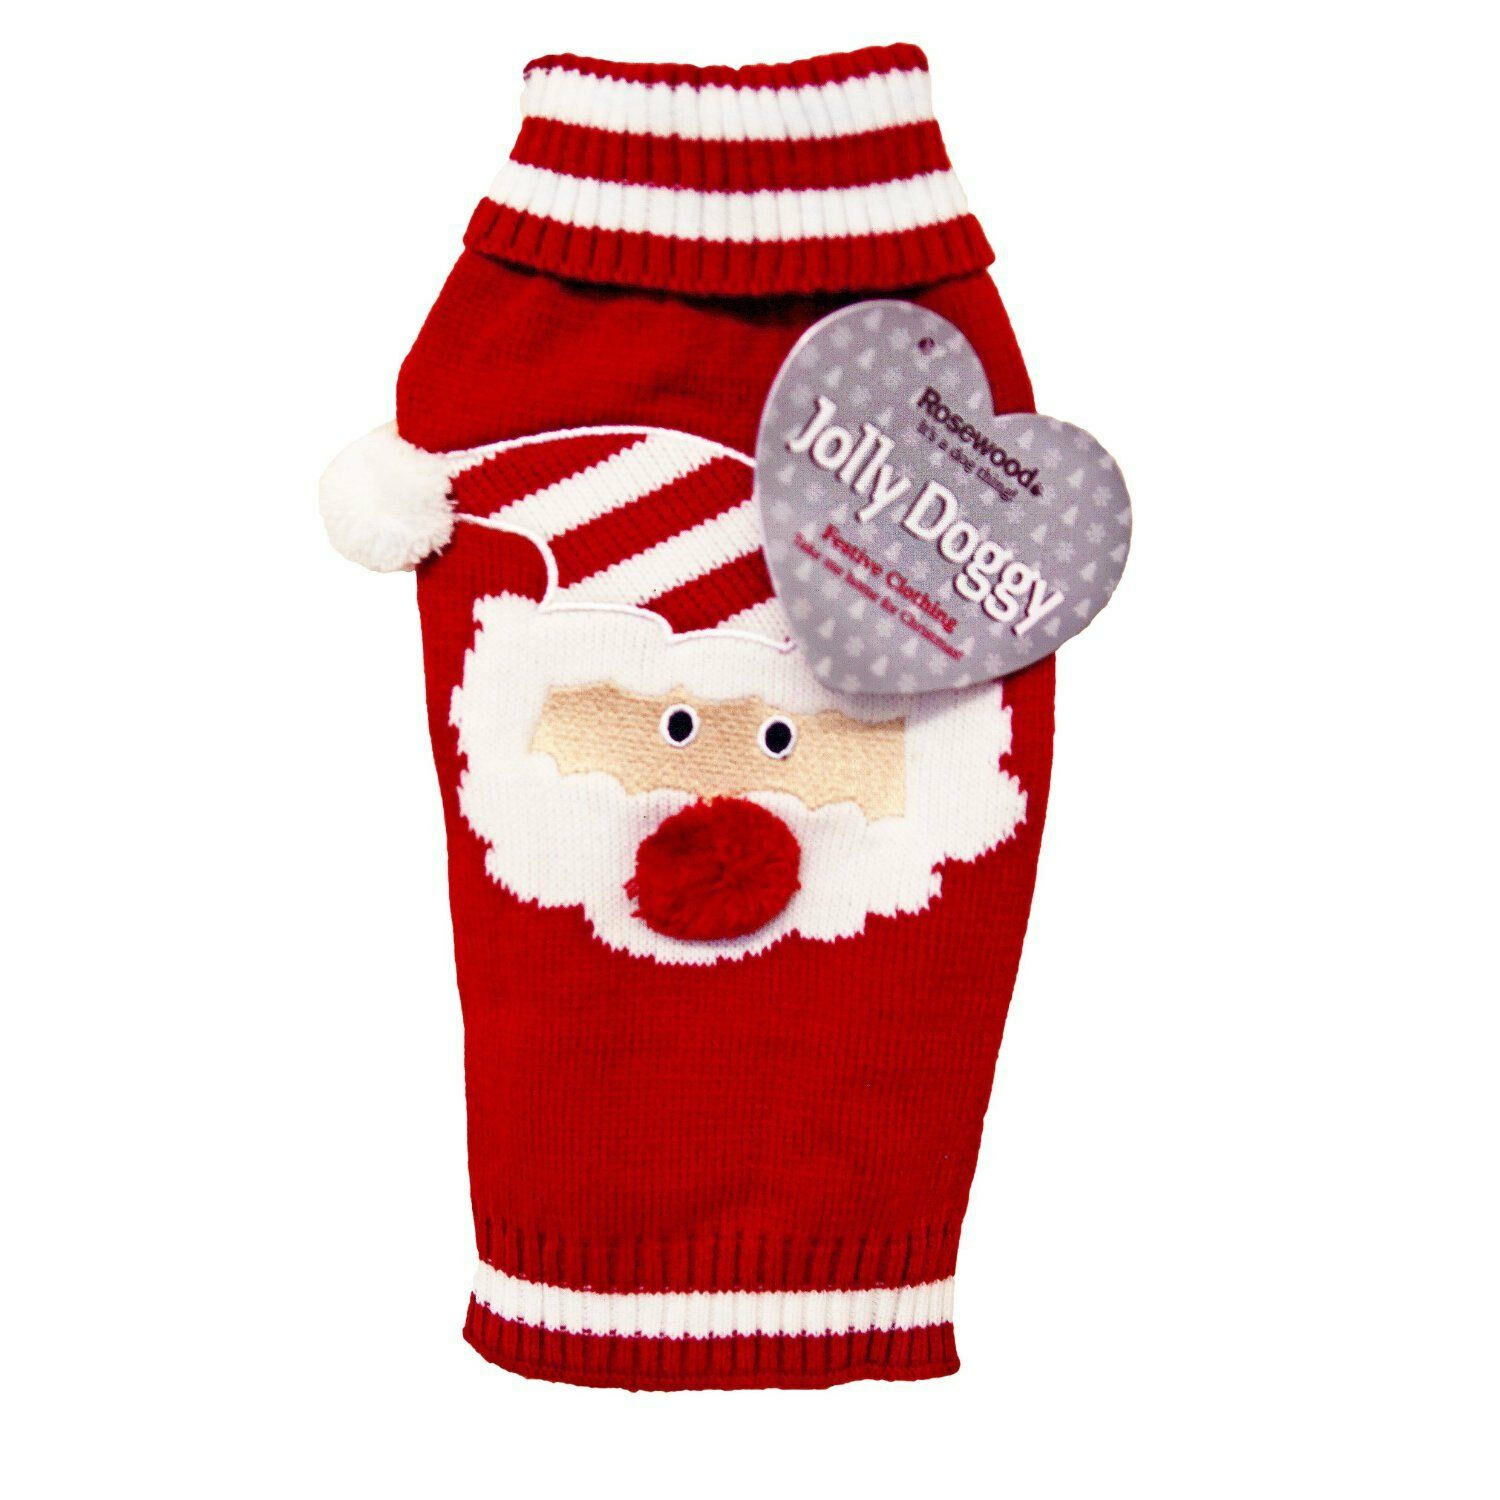 Rosewood Christmas Santa Claus Sweater Large 46cm RW38891